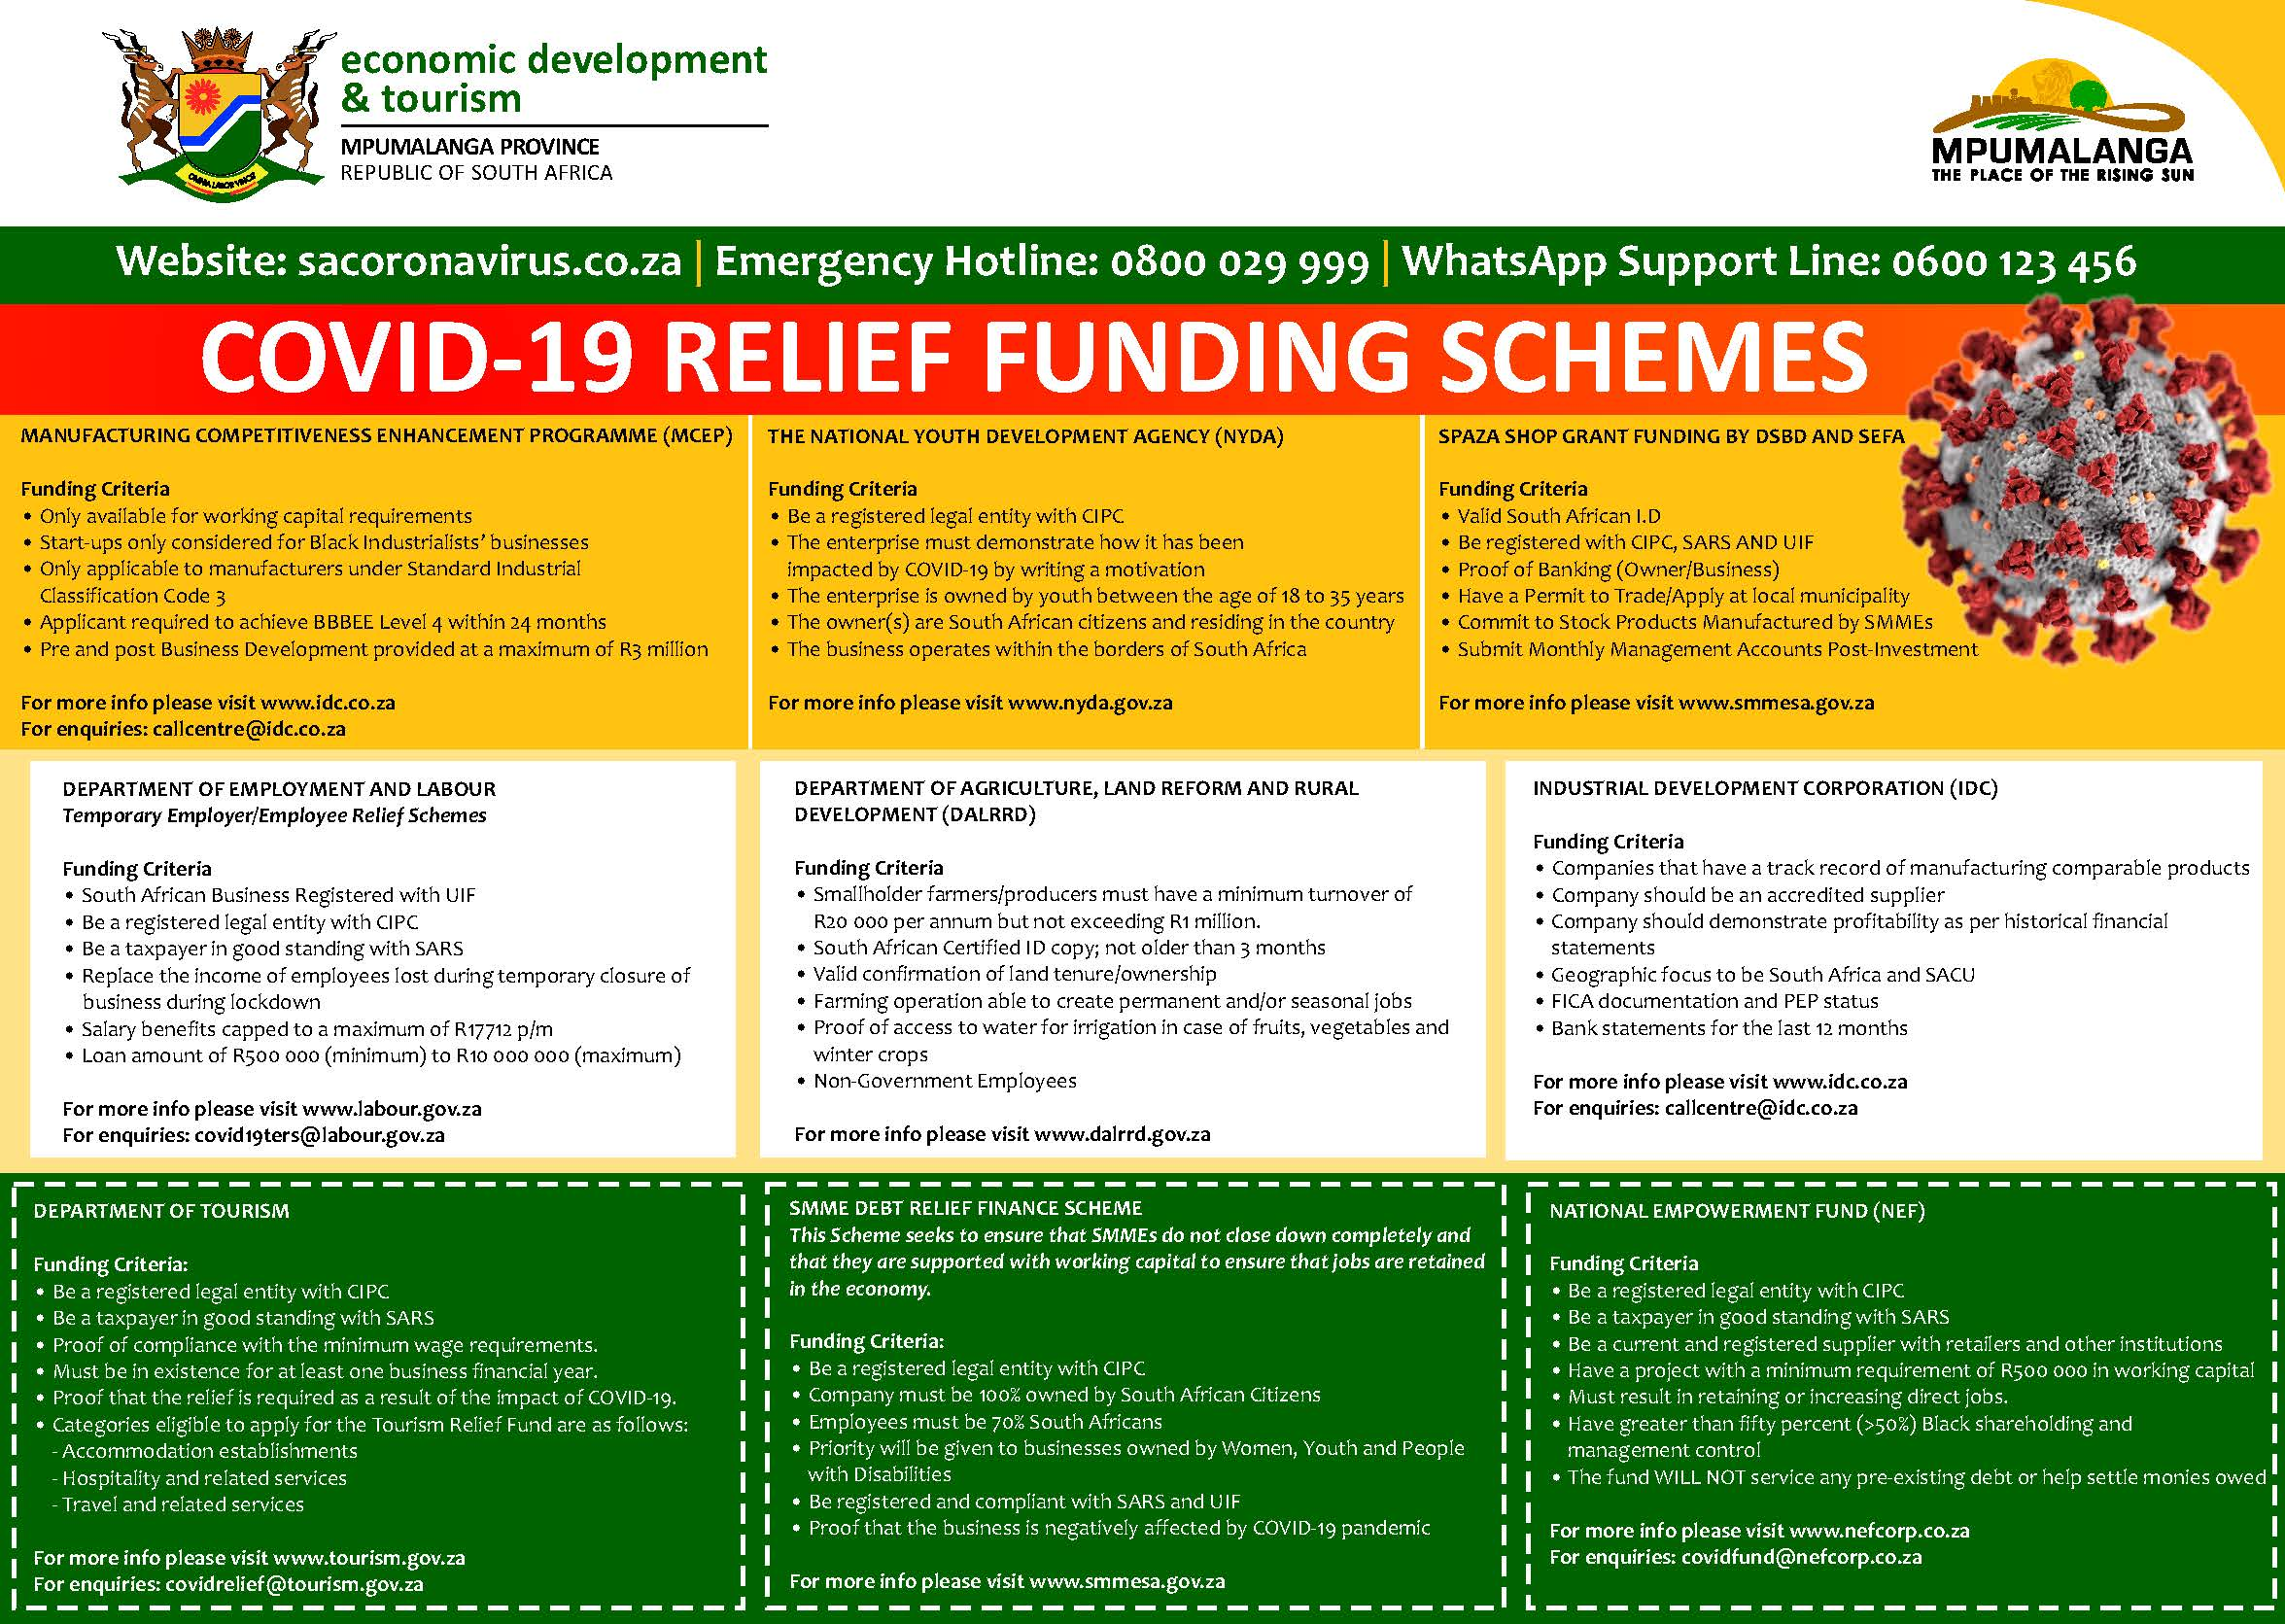 COVID-19 Relief Funding Schemes